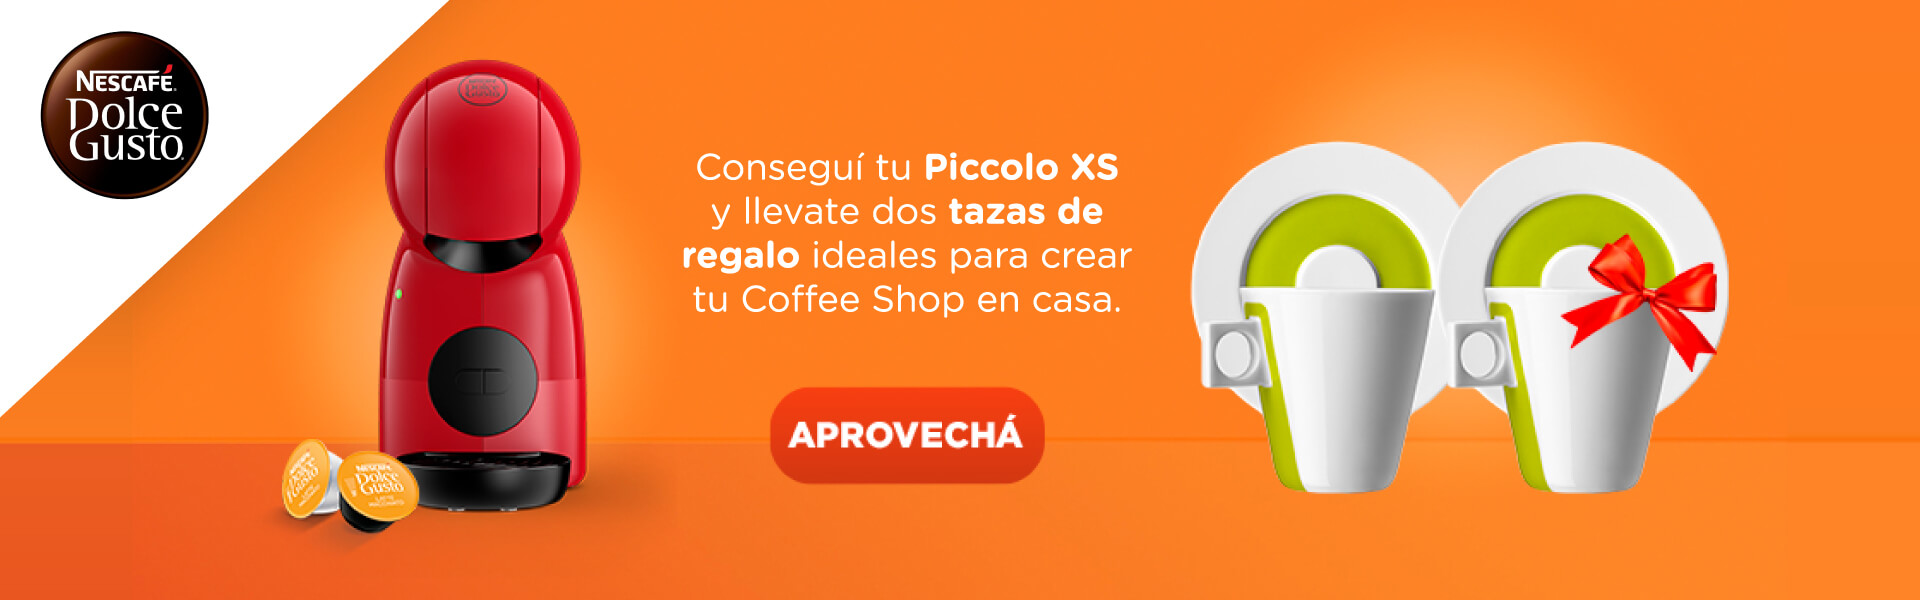 NESCAFE DOLCE GUSTO----------------------------------------------d-cafetera